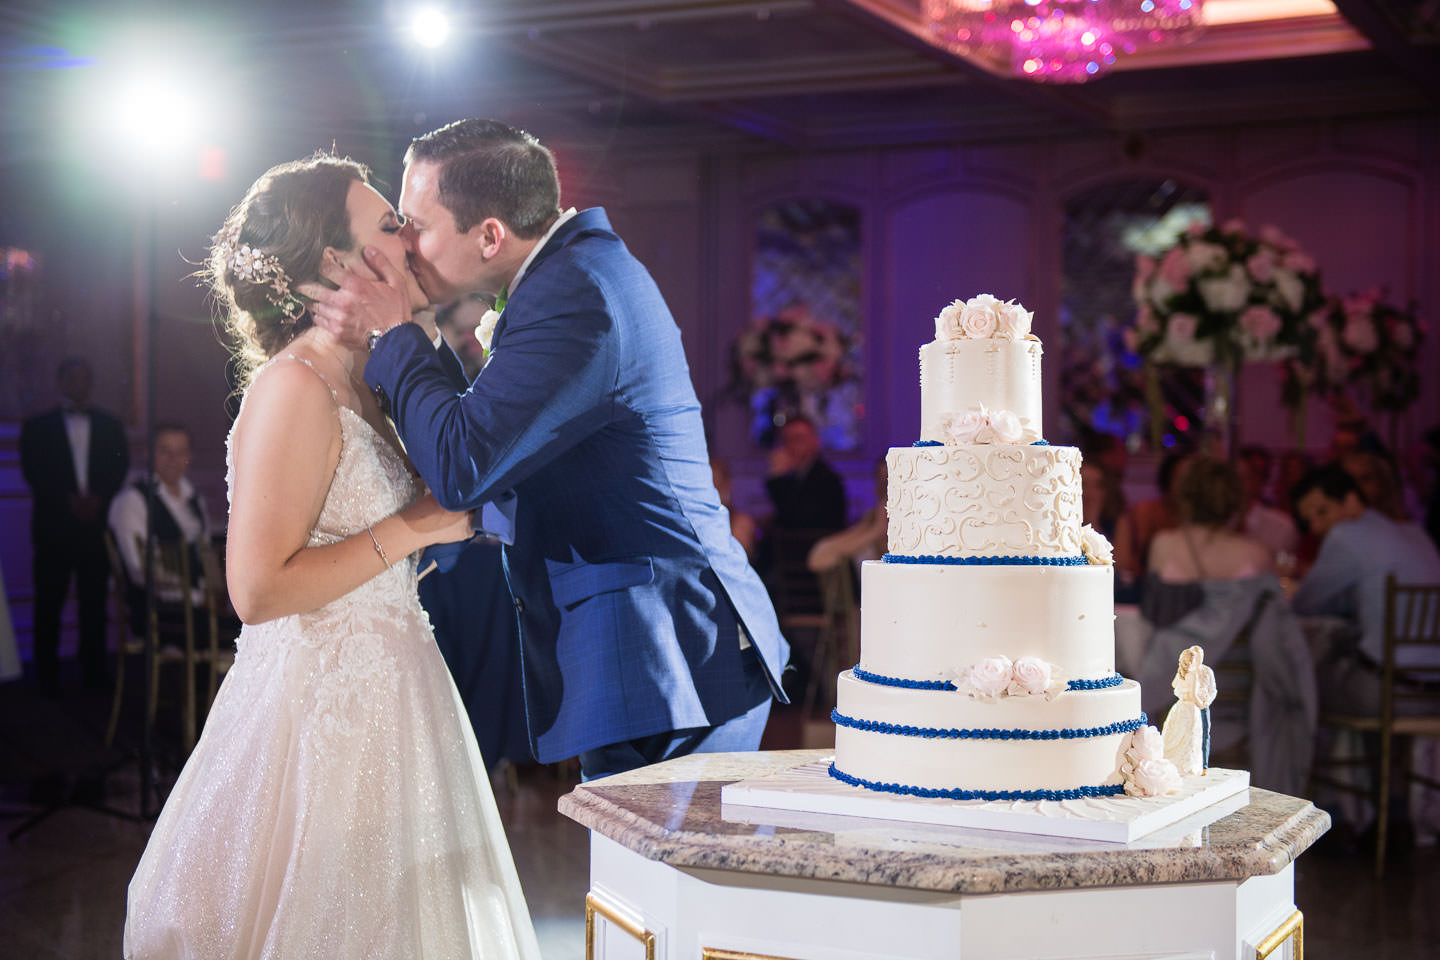 cake cutting at royal manor wedding in new jersey